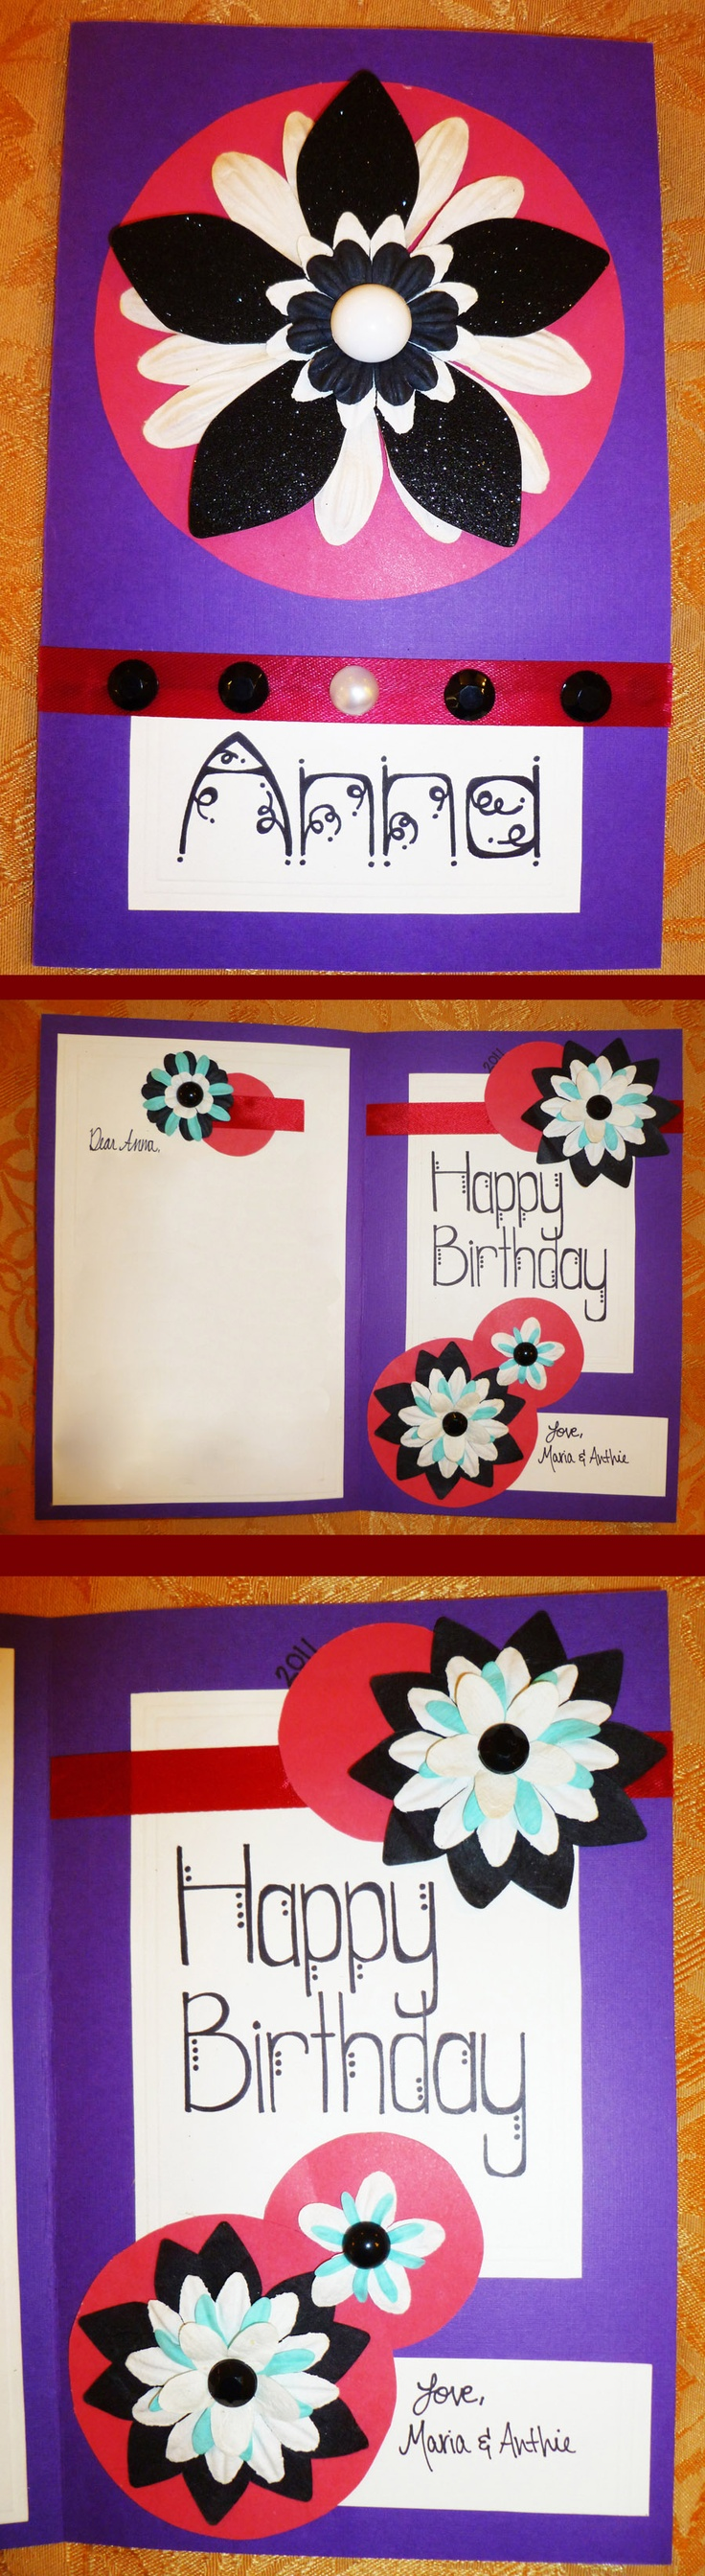 One of the first cards I made. I love the color combination and its simplicity.